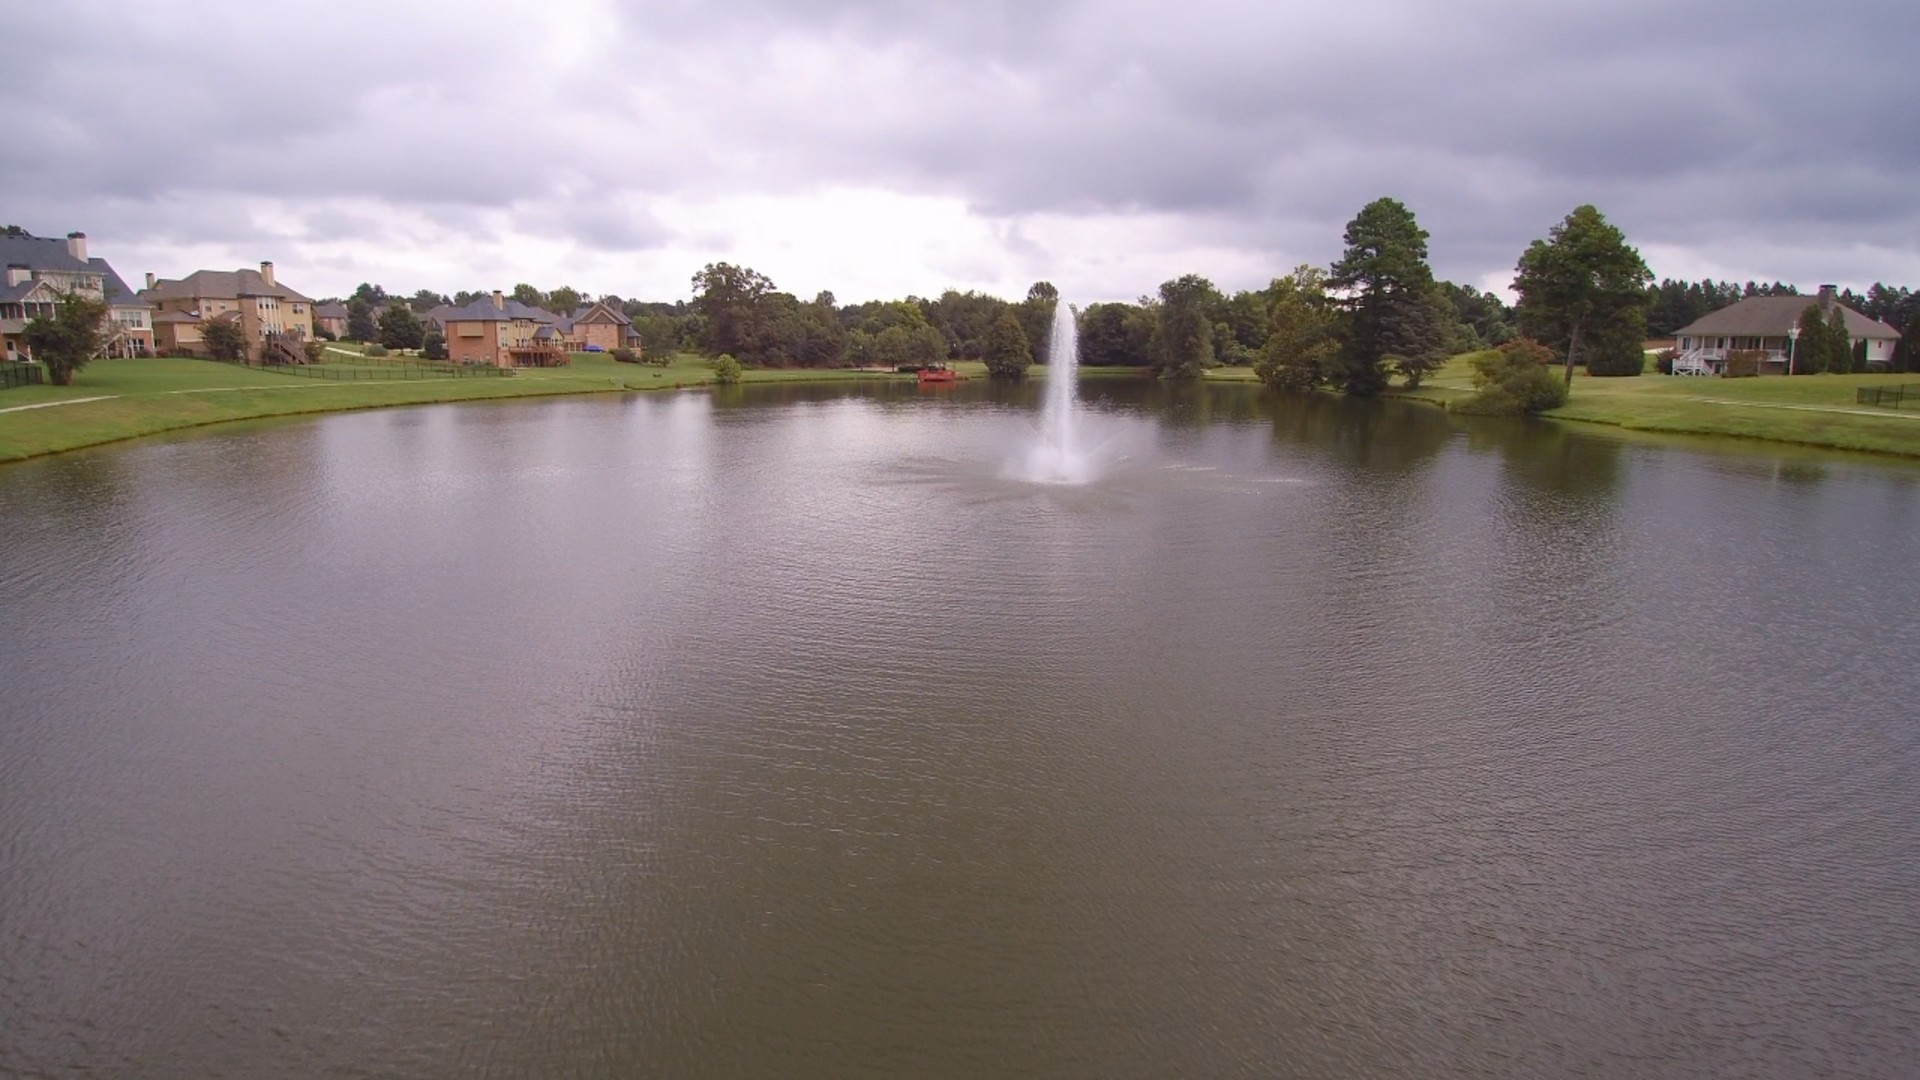 Drone_Lake_TraditionsOfB00120171106081540